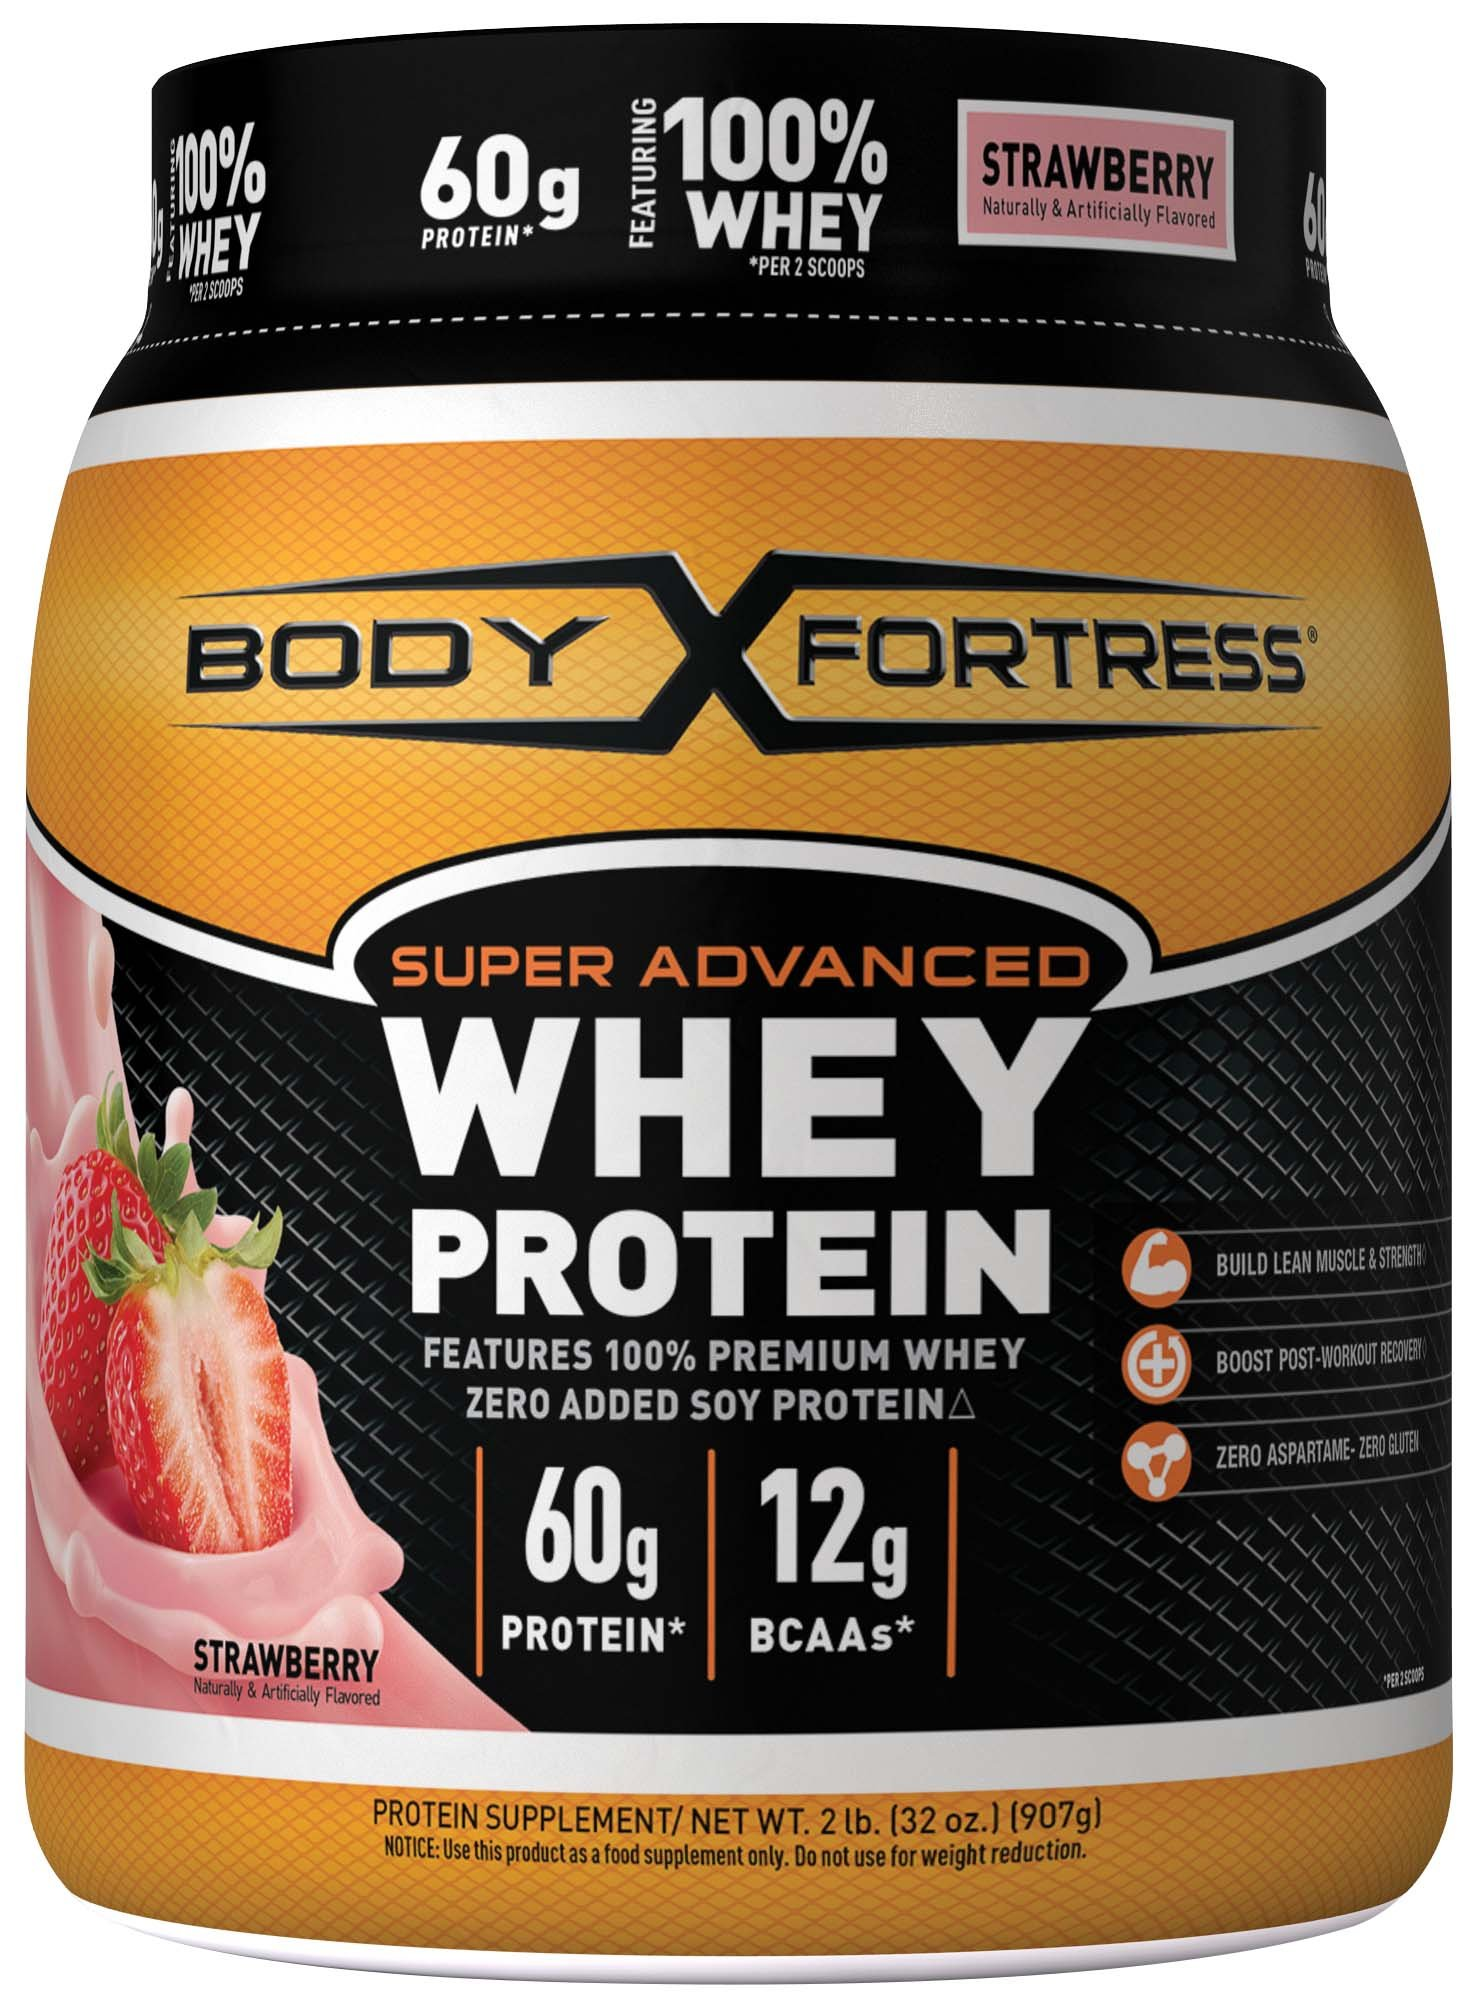 Body Fortress Super Advanced Whey Protein Powder, Gluten Free, Strawberry, 2 lbs